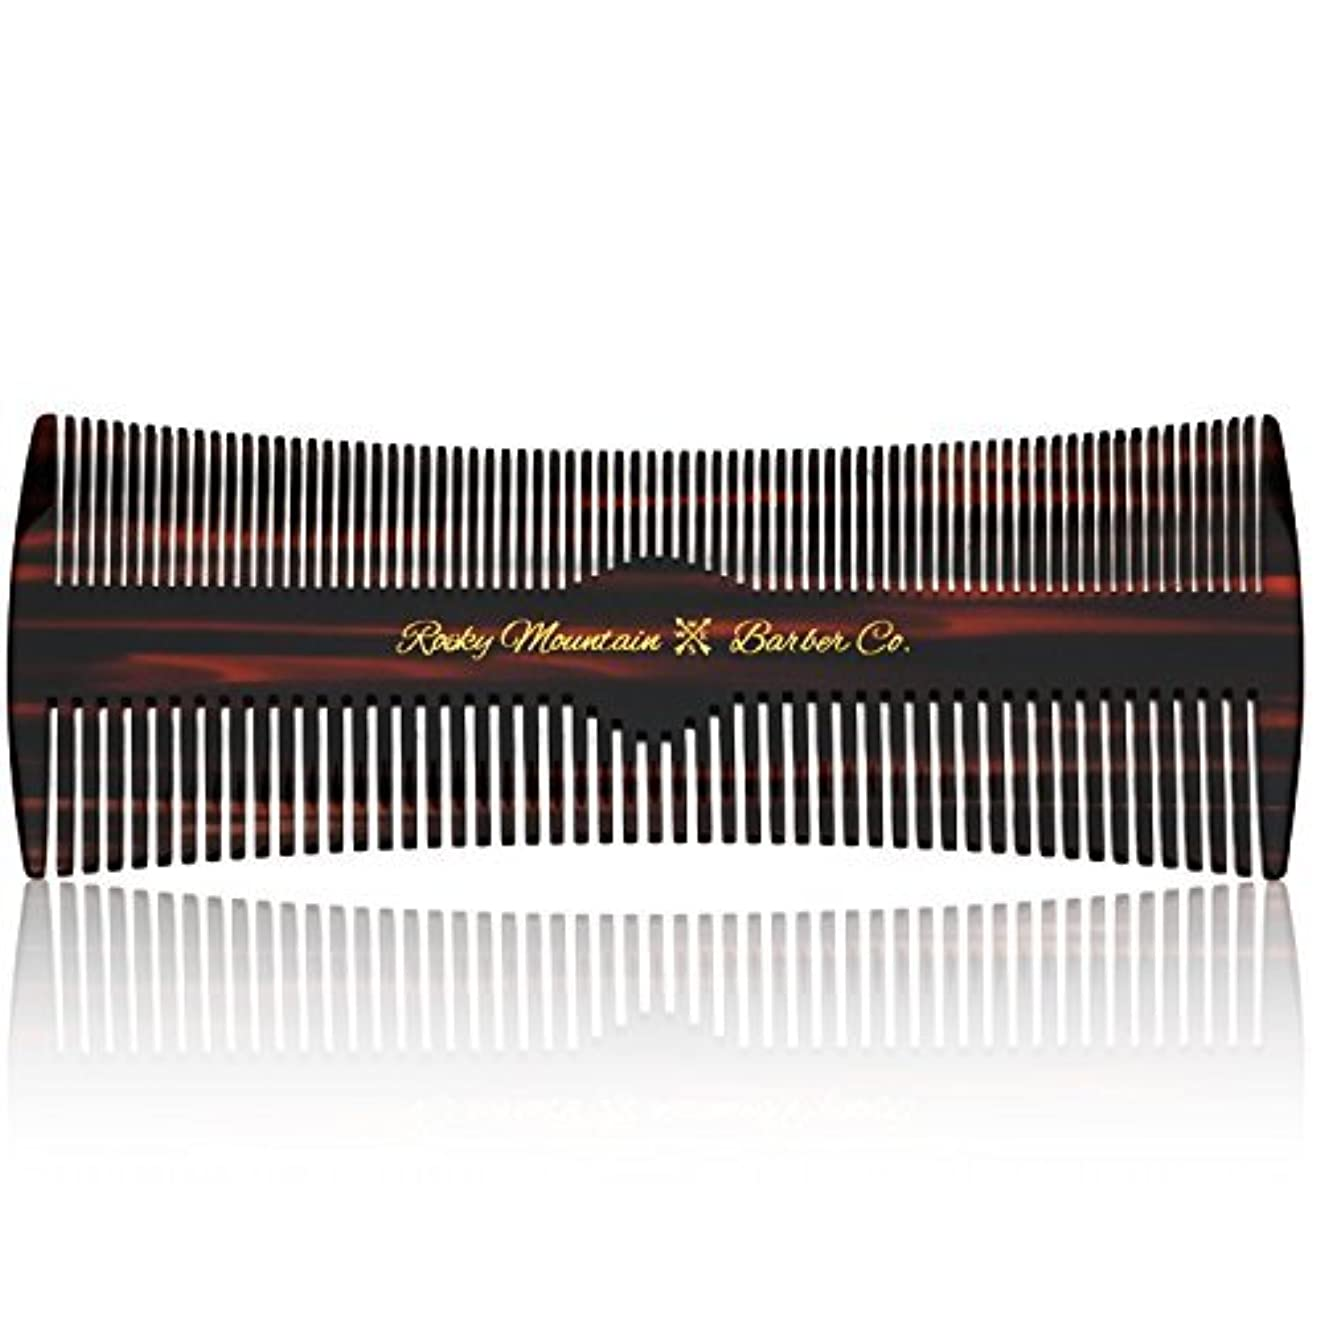 モネスピーカーHair Comb - Fine and Medium Tooth Comb for Head Hair, Beard, Mustache - Warp Resistant, No Snag Design with Contour...